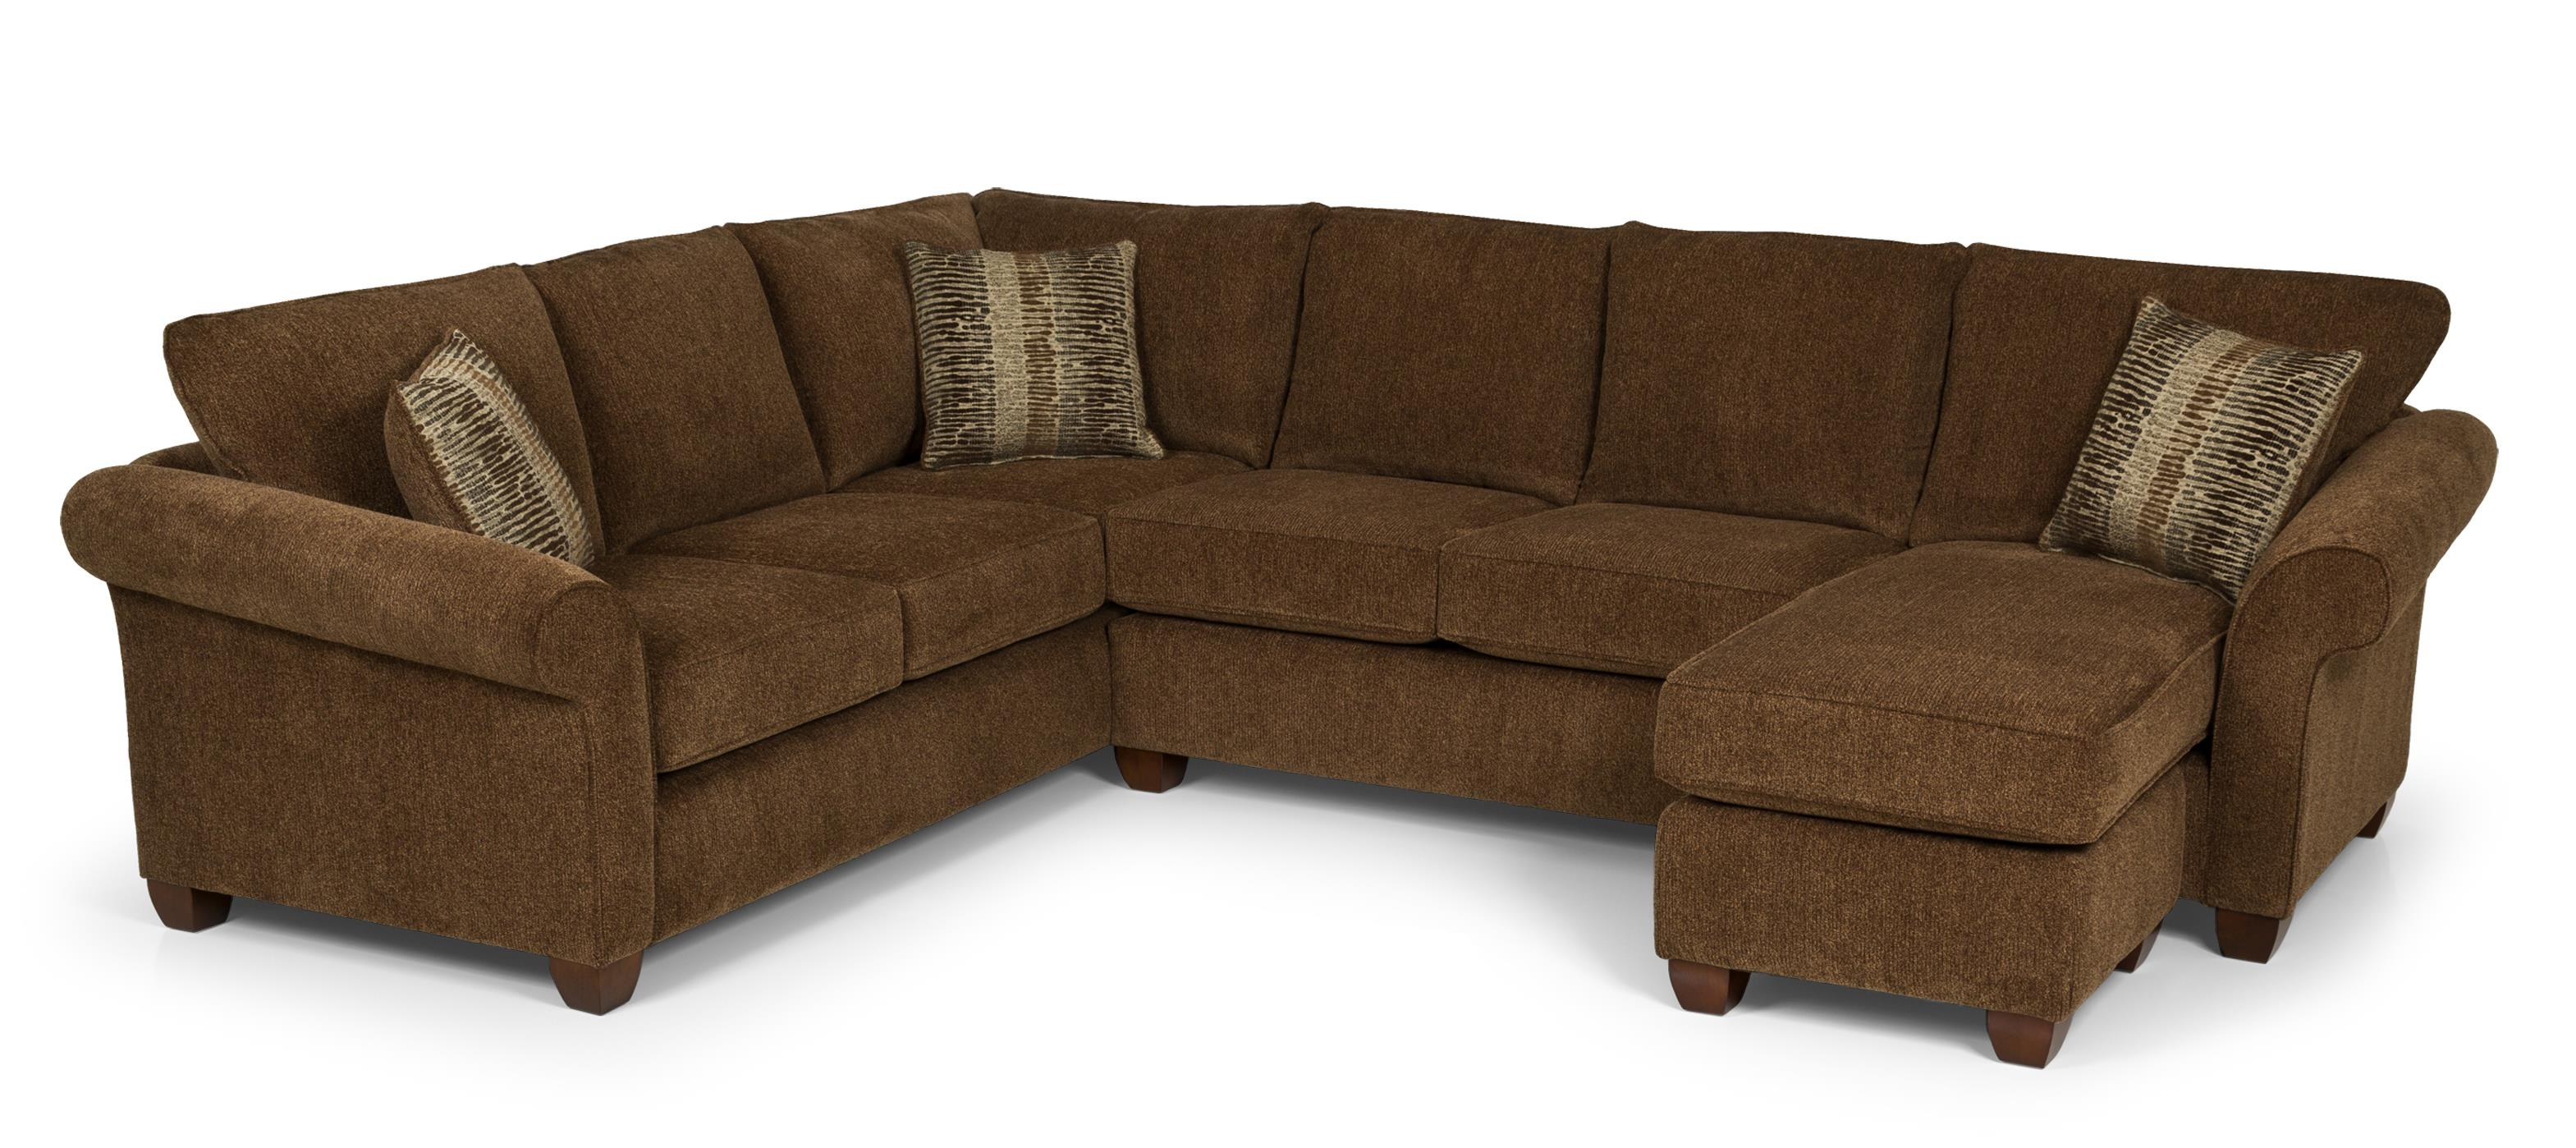 Stanton 664 two piece sectional sofa with laf chaise for Albany st germain sectional sofa chaise